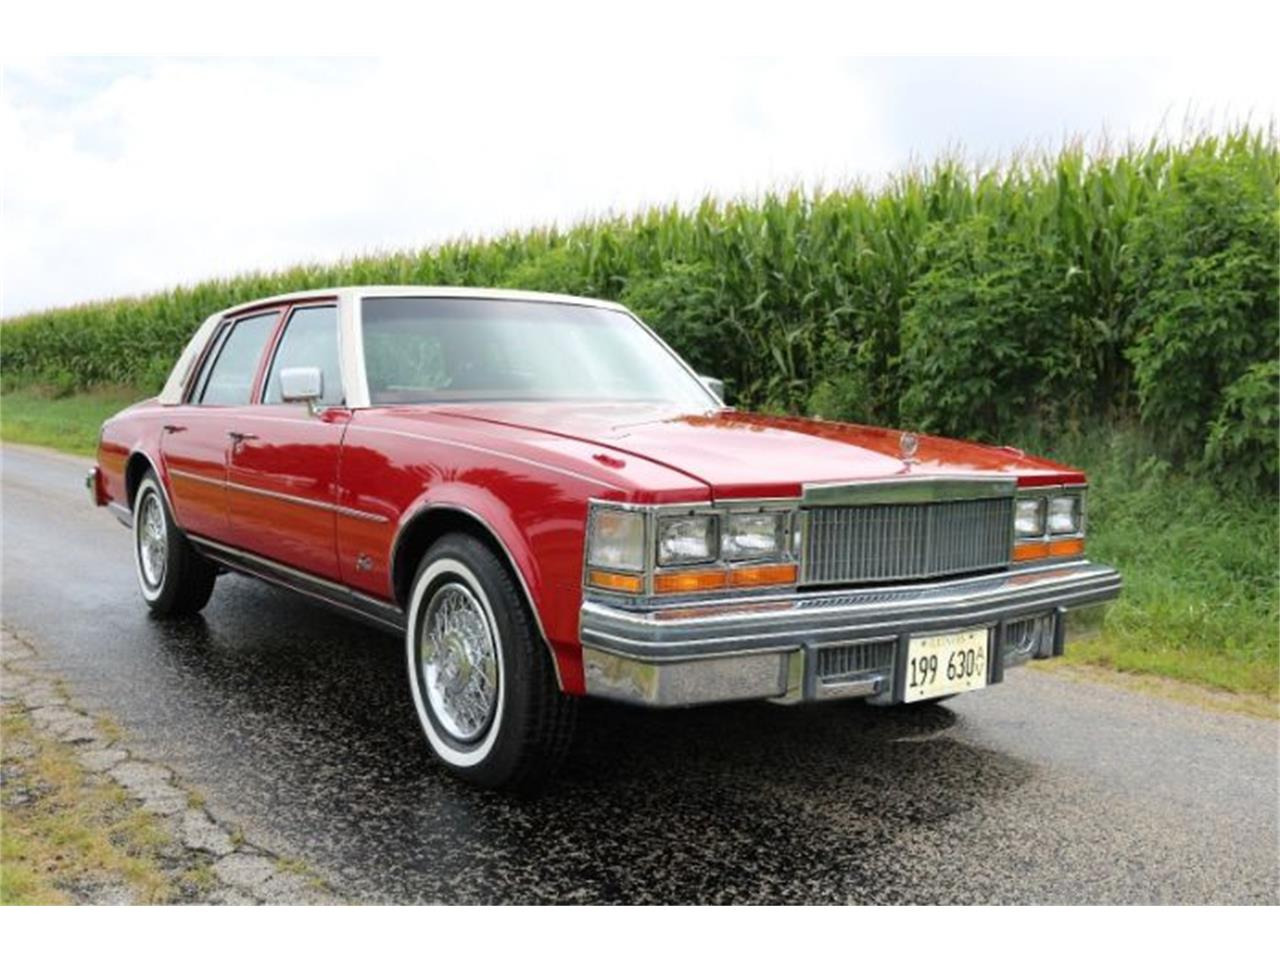 1979 Cadillac Seville for sale in Cadillac, MI – photo 2